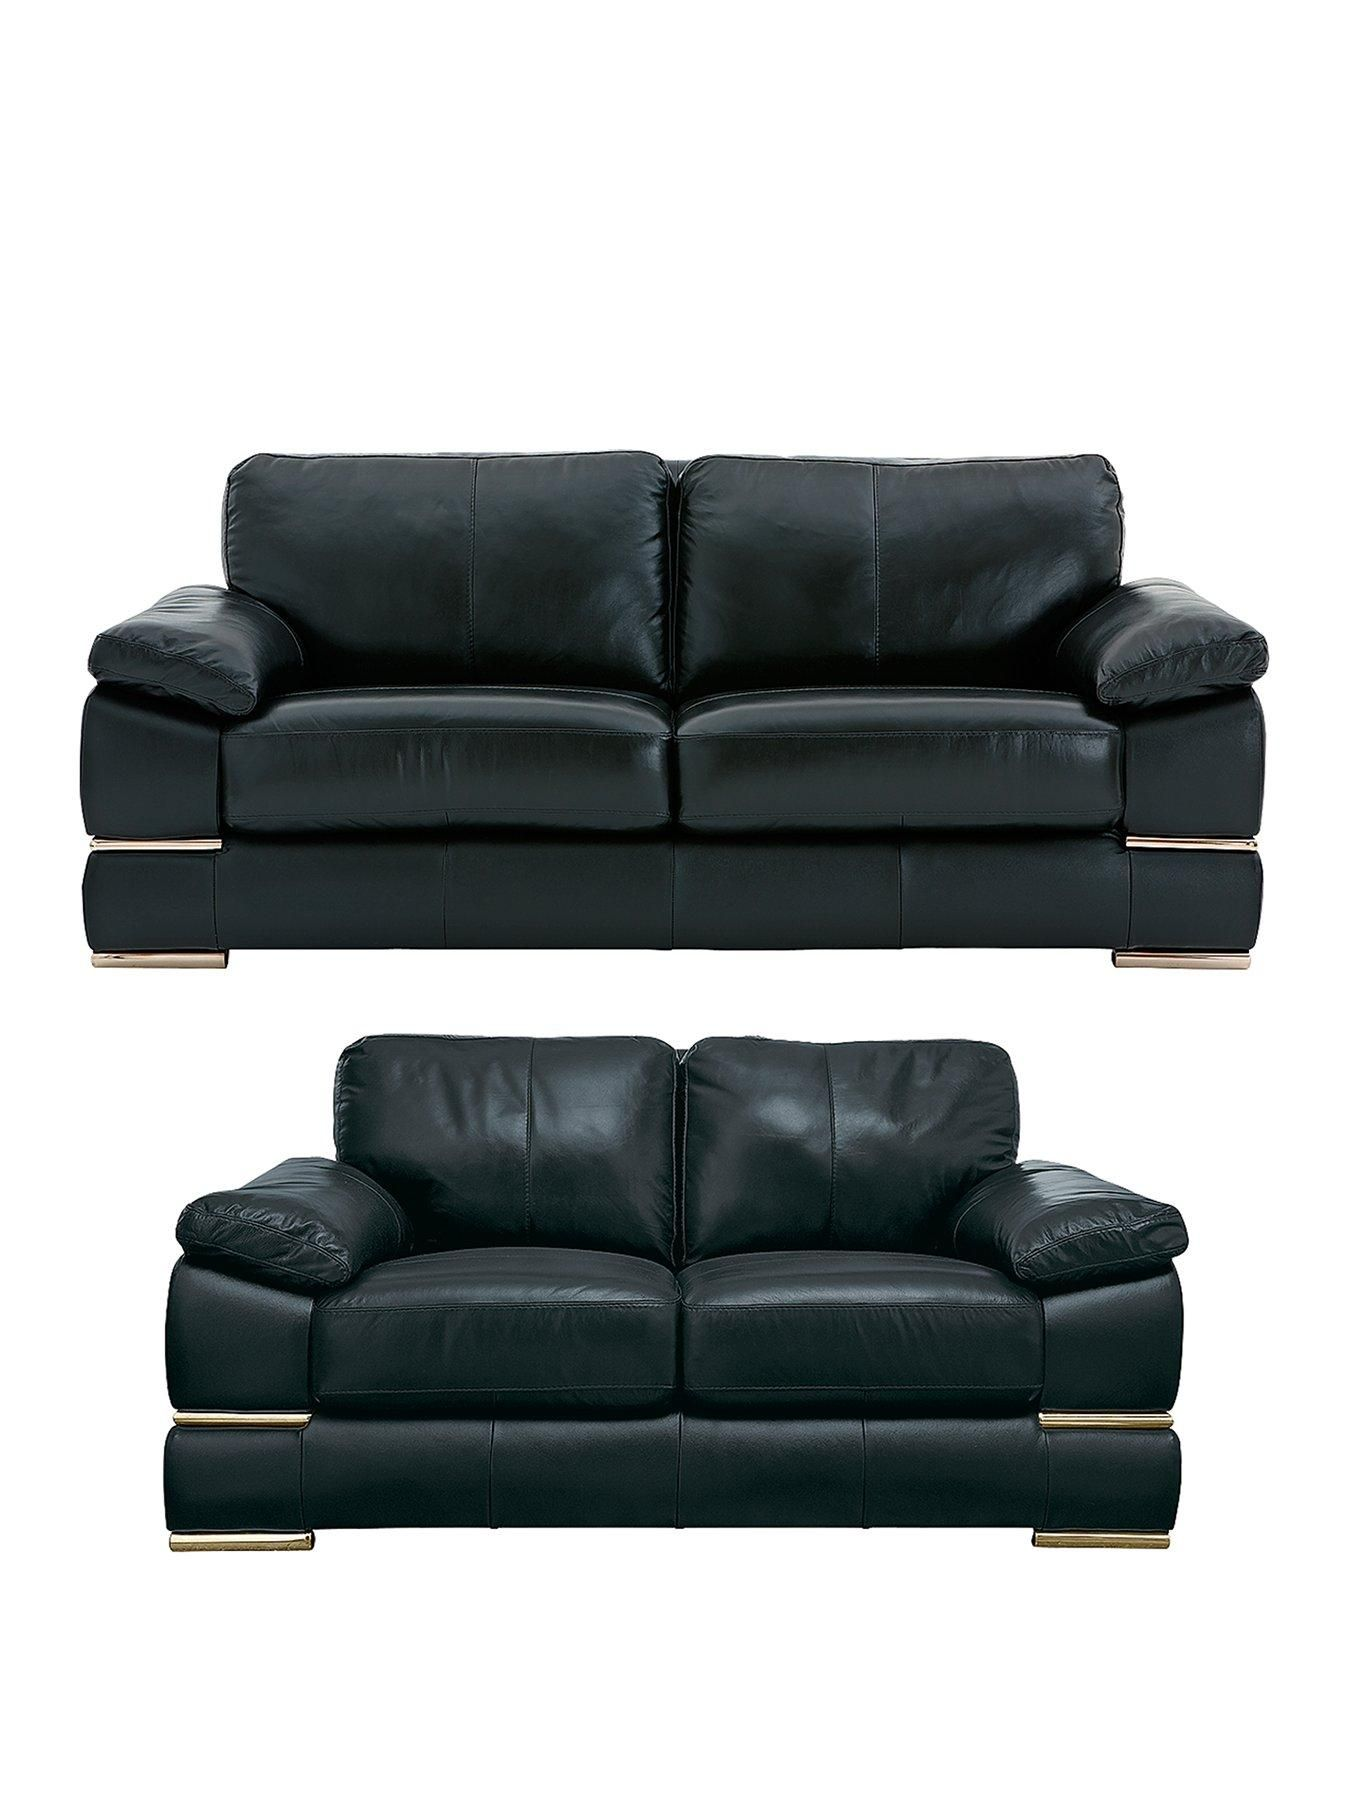 Primo Italian Leather 3 Seater + 2 Seater Sofa Set (Buy And ...